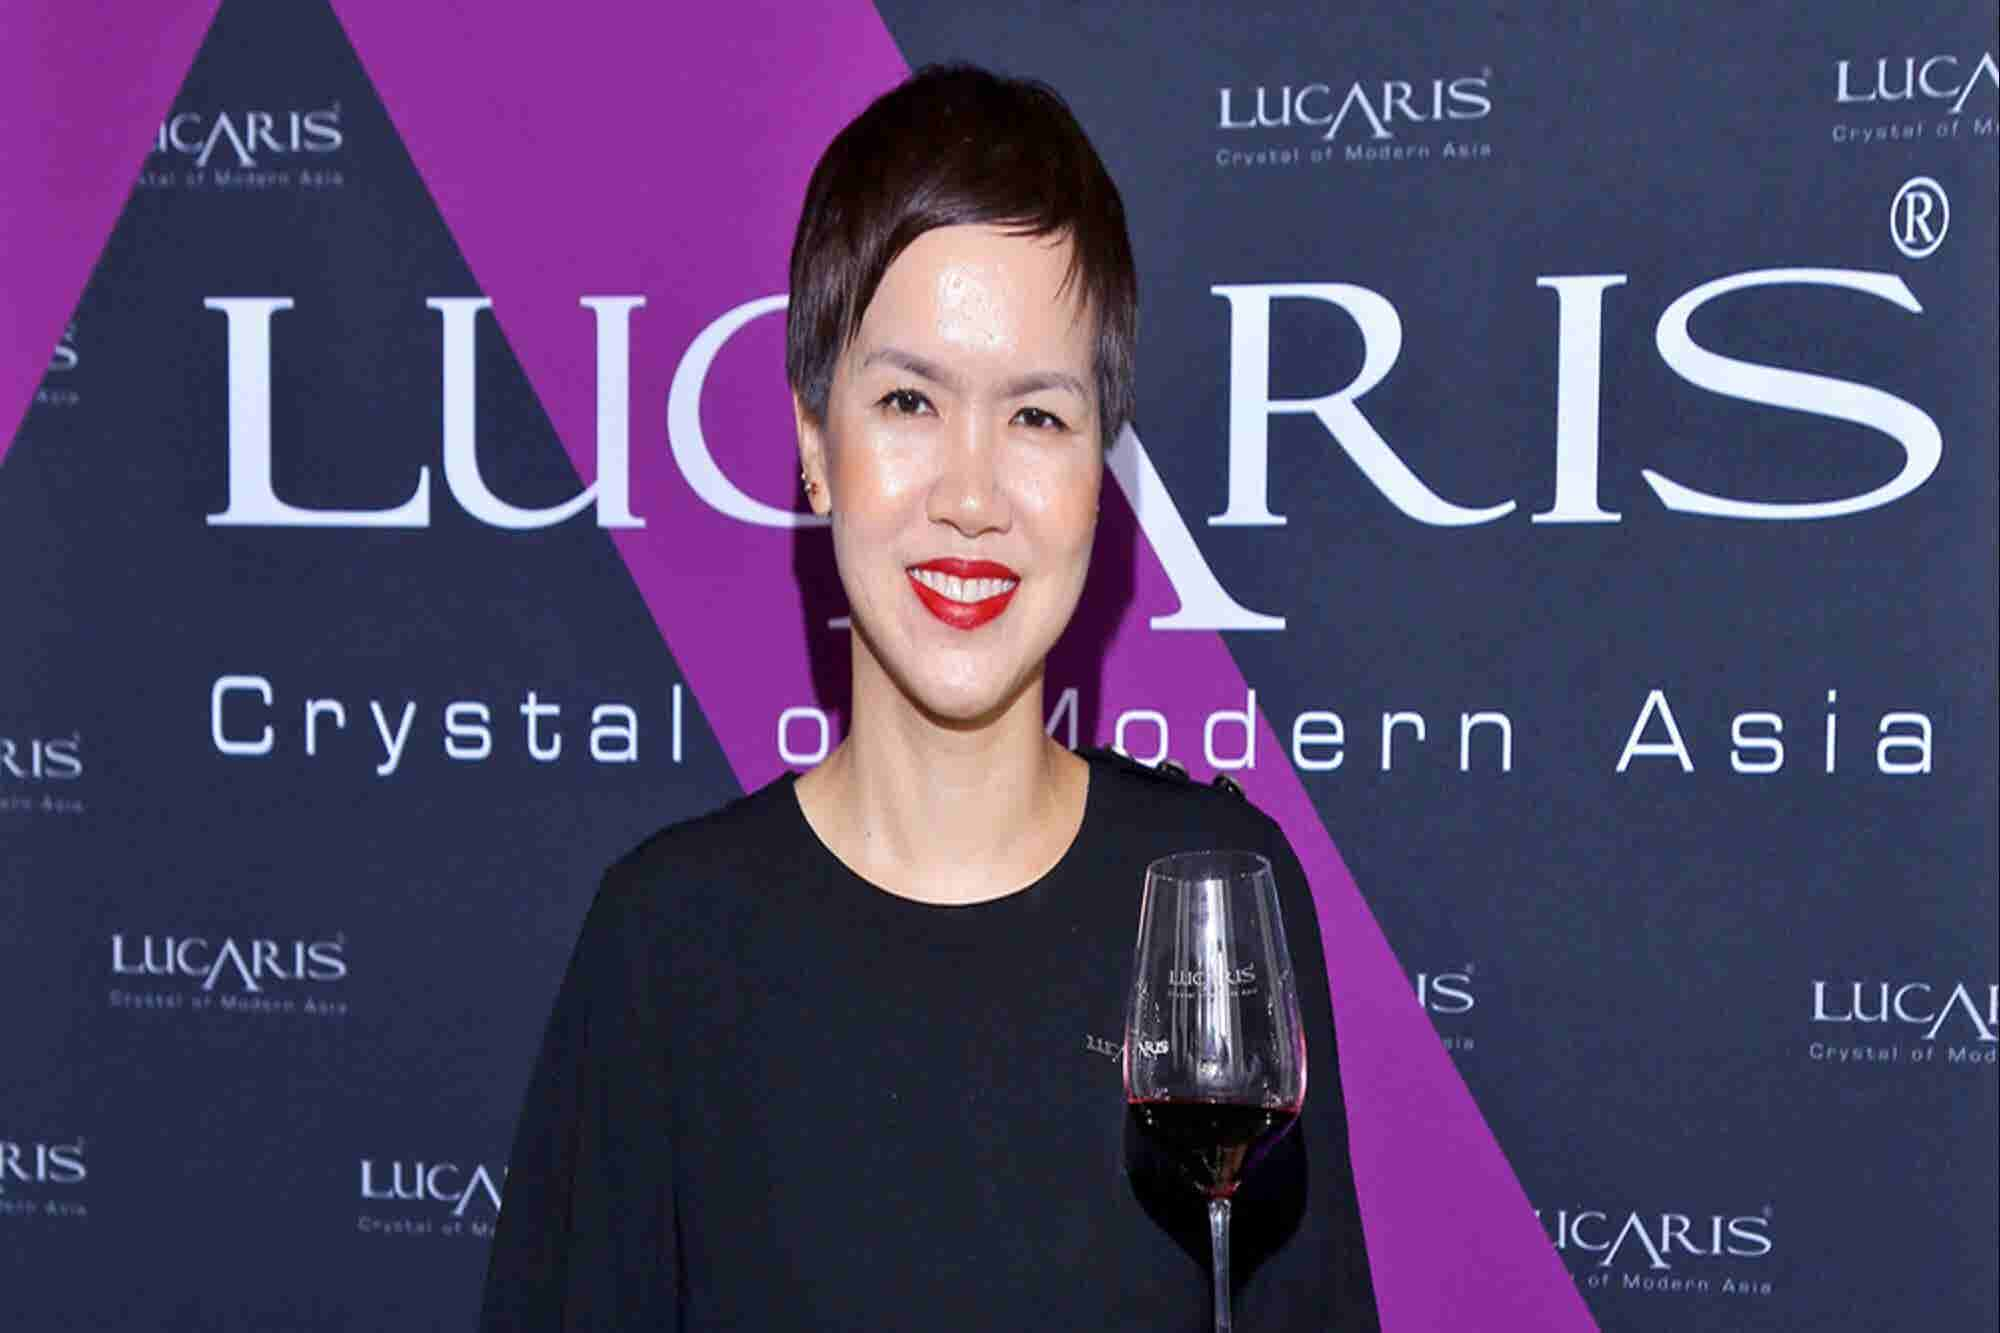 Indian Market Is Still In The Growing Phase When It Comes To Wine Consumption: Team LUCARIS